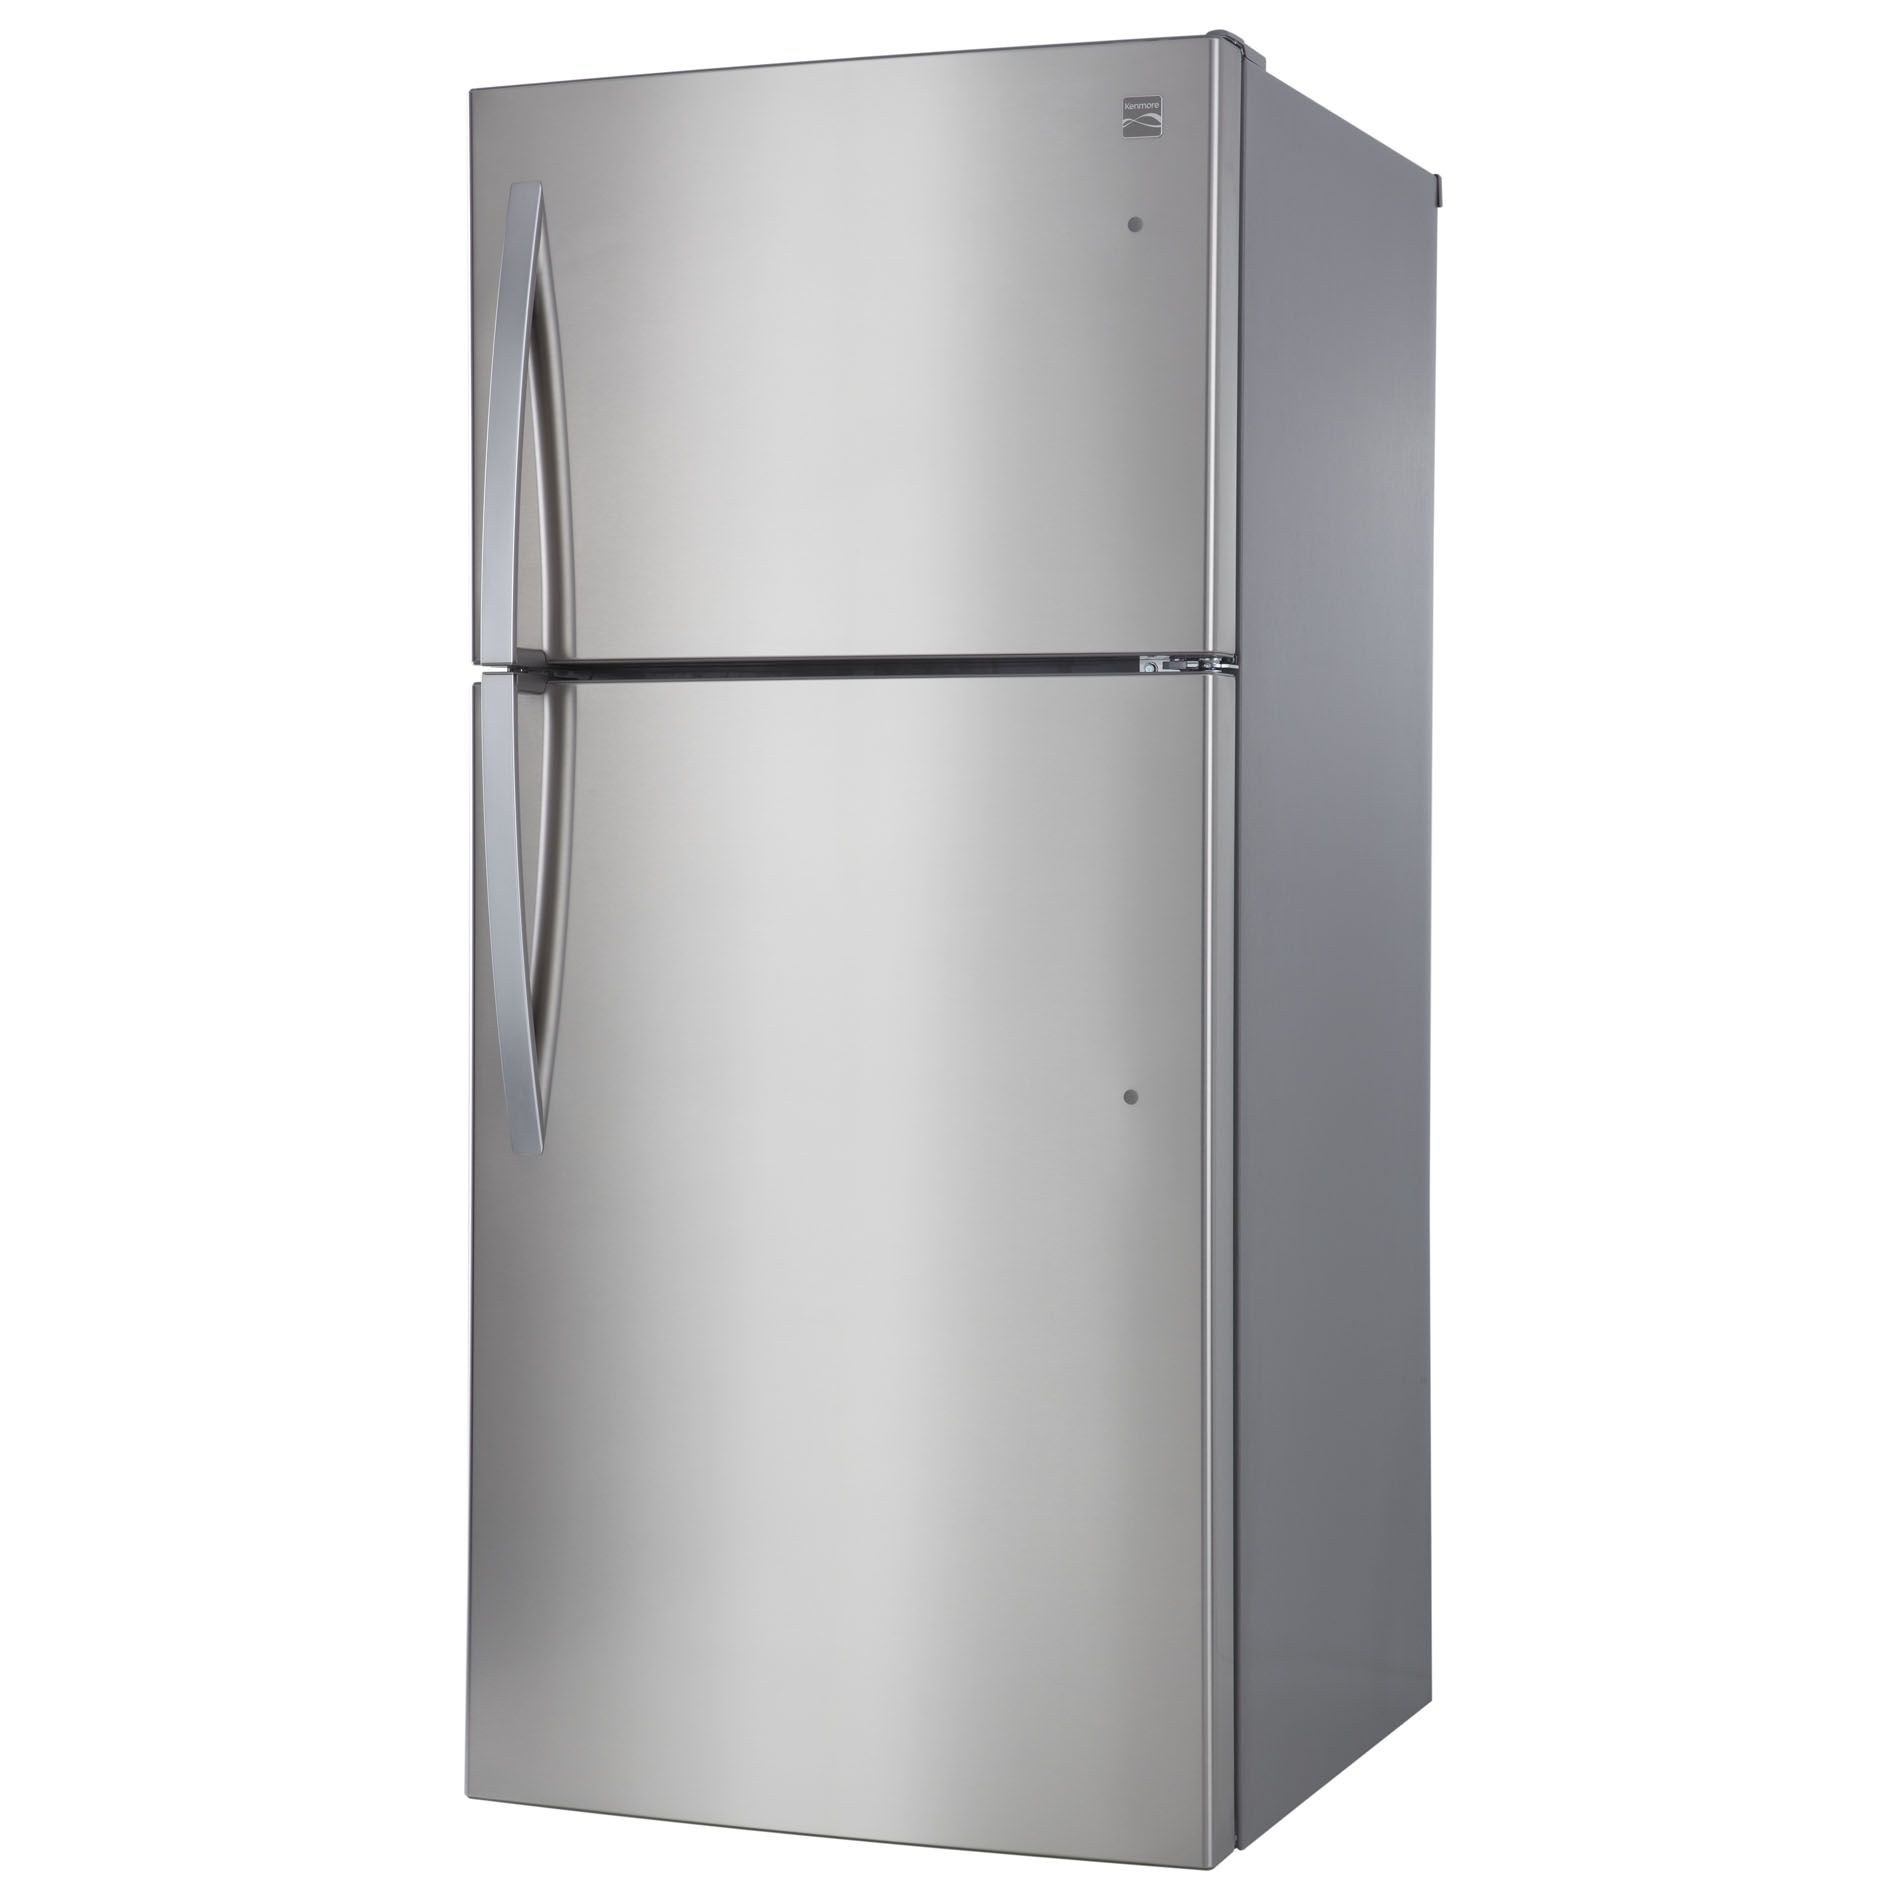 Kenmore 20 cu. ft. Stainless Steel Top-Freezer Refrigerator